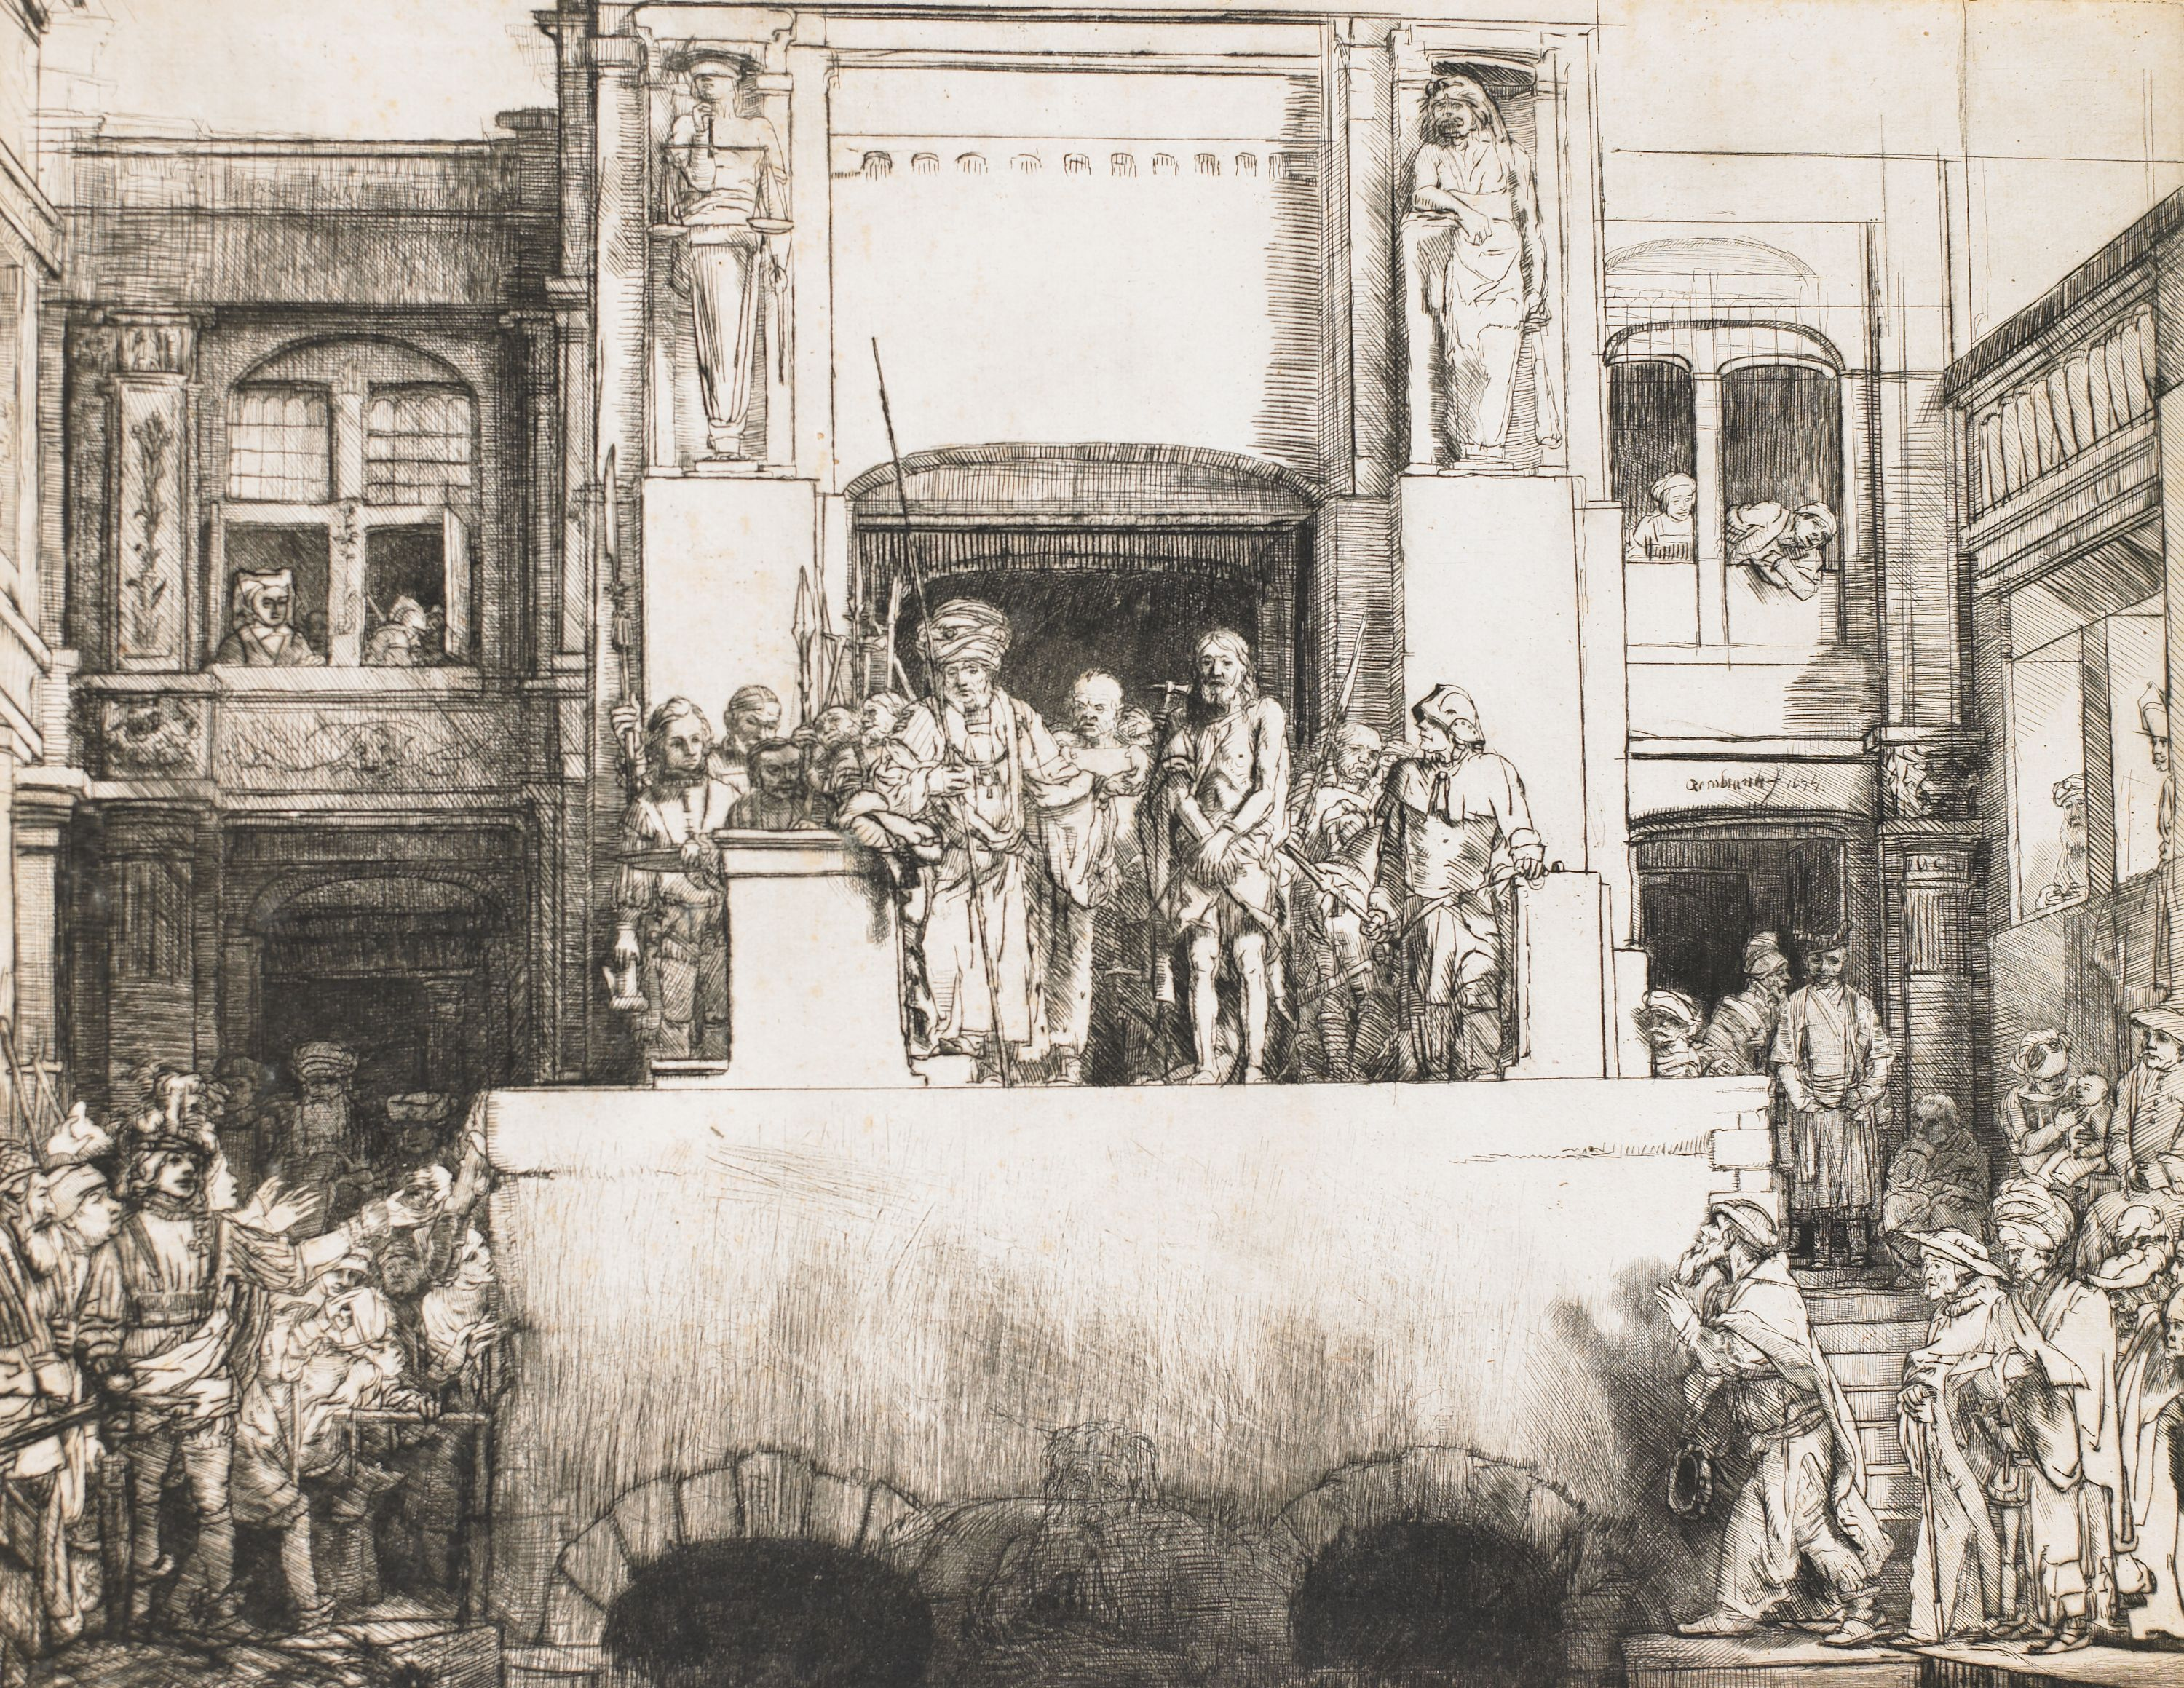 """Christ Presented to the People (Ecco Homo)"" Rembrandt van Rijn (Netherlands, 1606-1669), drypoint (state 4 of 4), print. 1957.97."